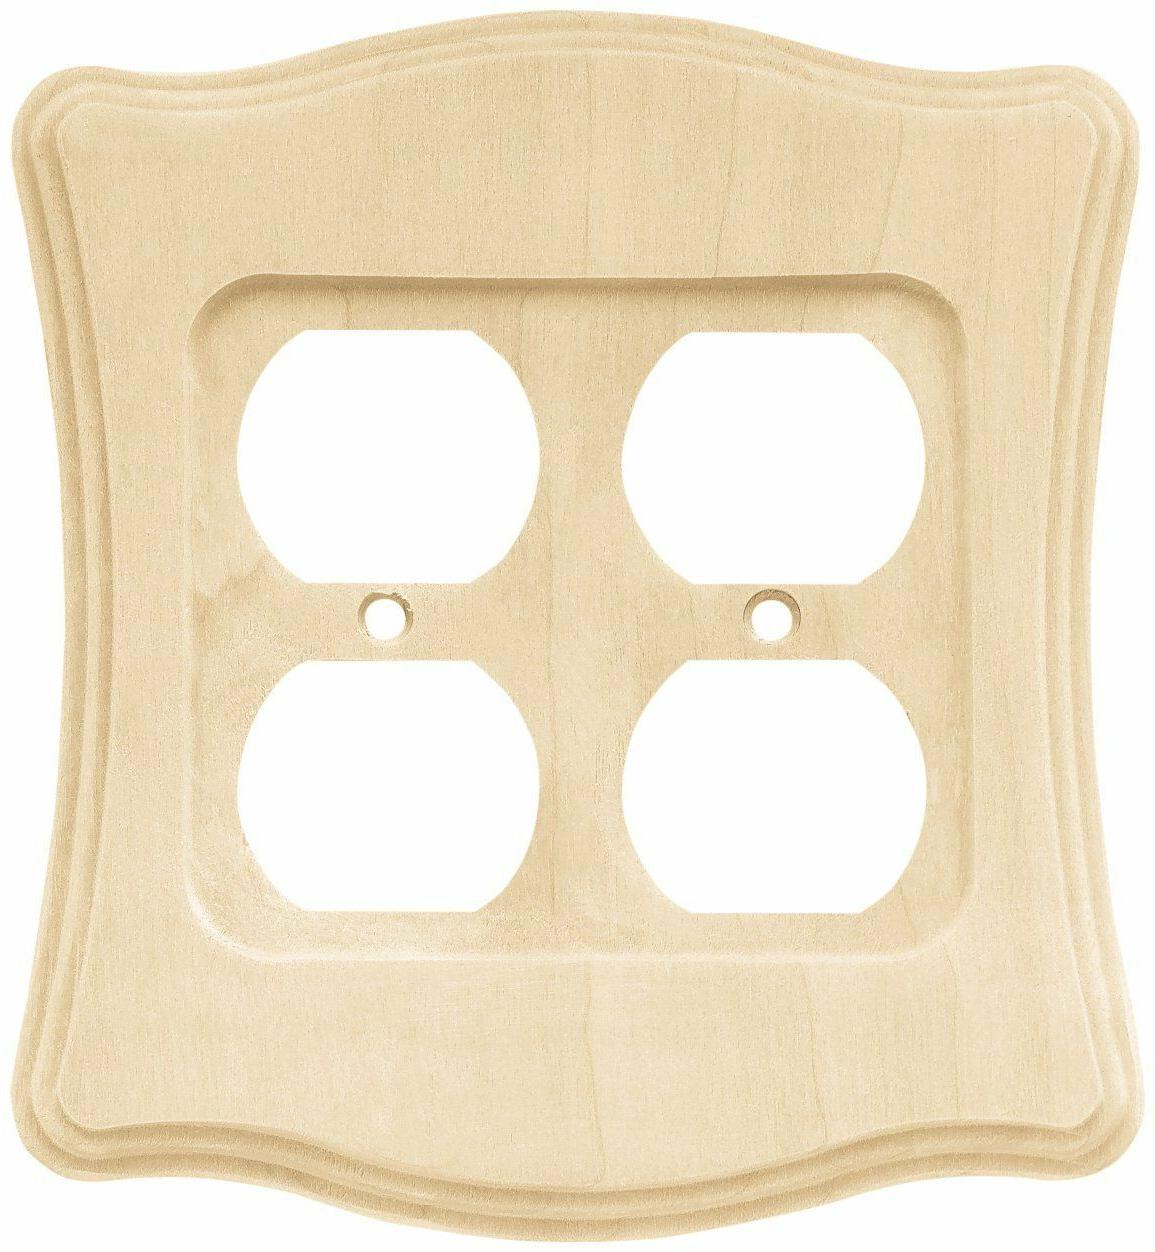 Double Duplex Wall Plate Wood Unfinished Franklin Brass 6462